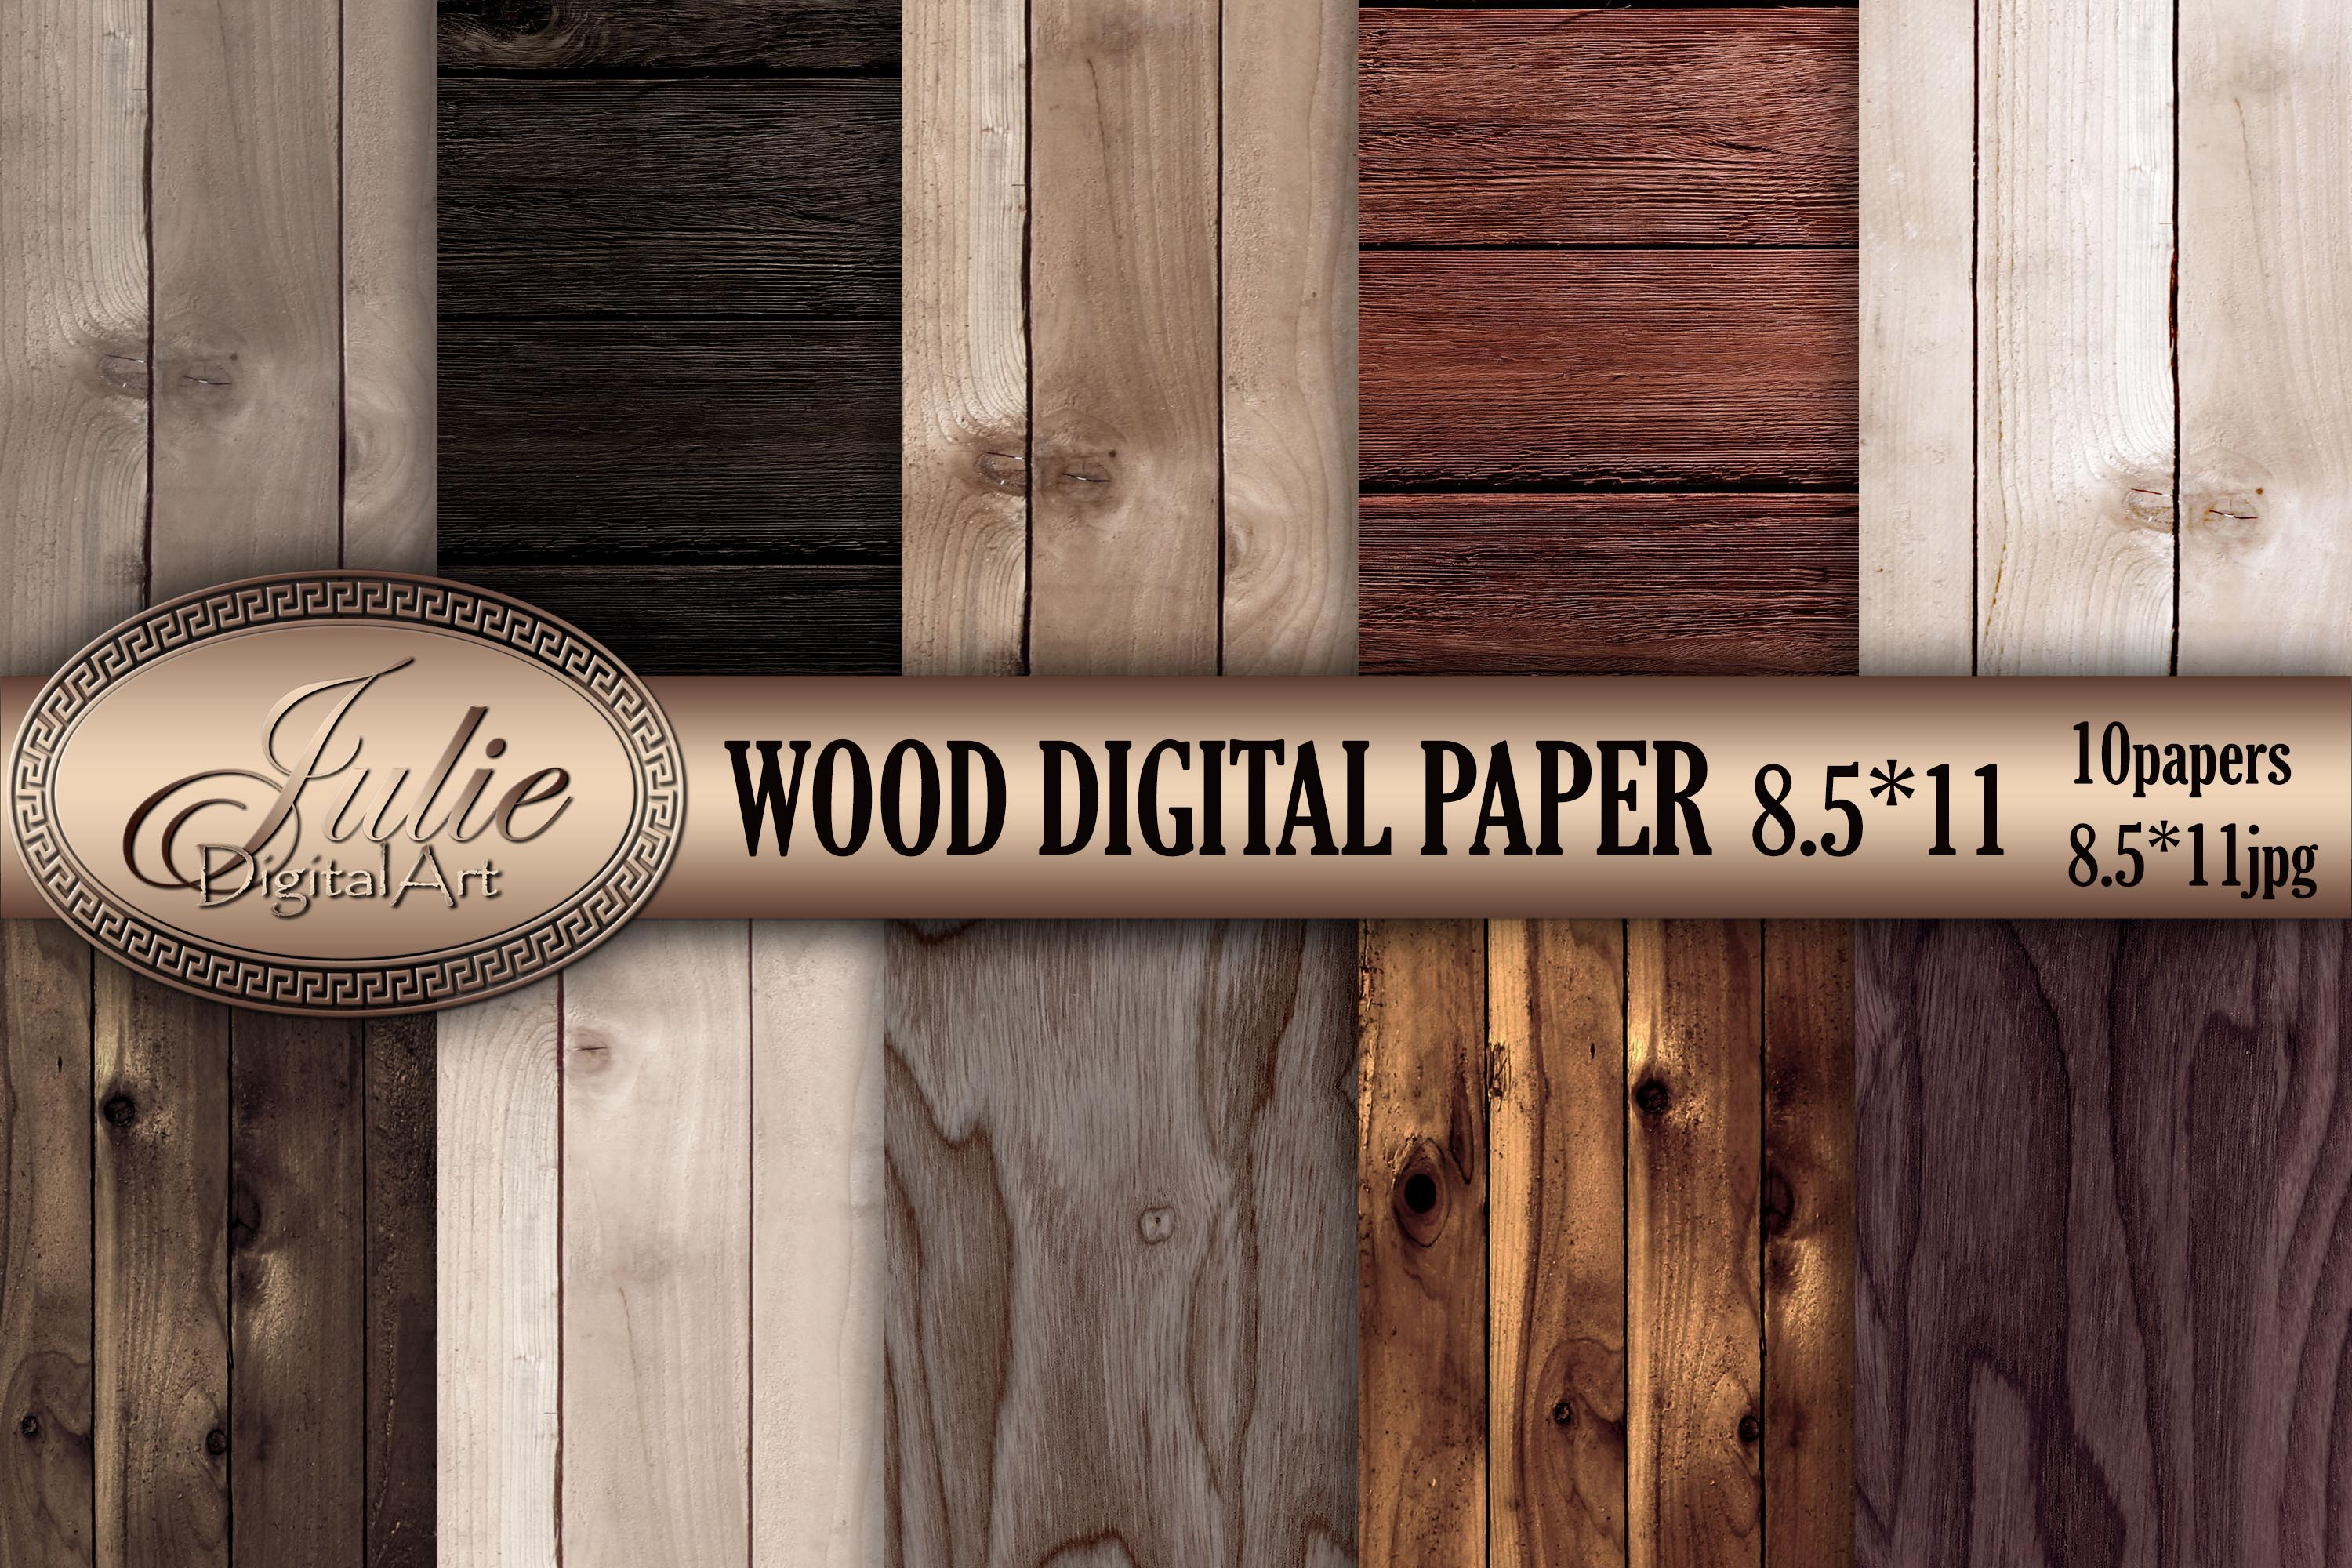 Wood digital paper 8. 5 x 11 Natural wood background example image 1